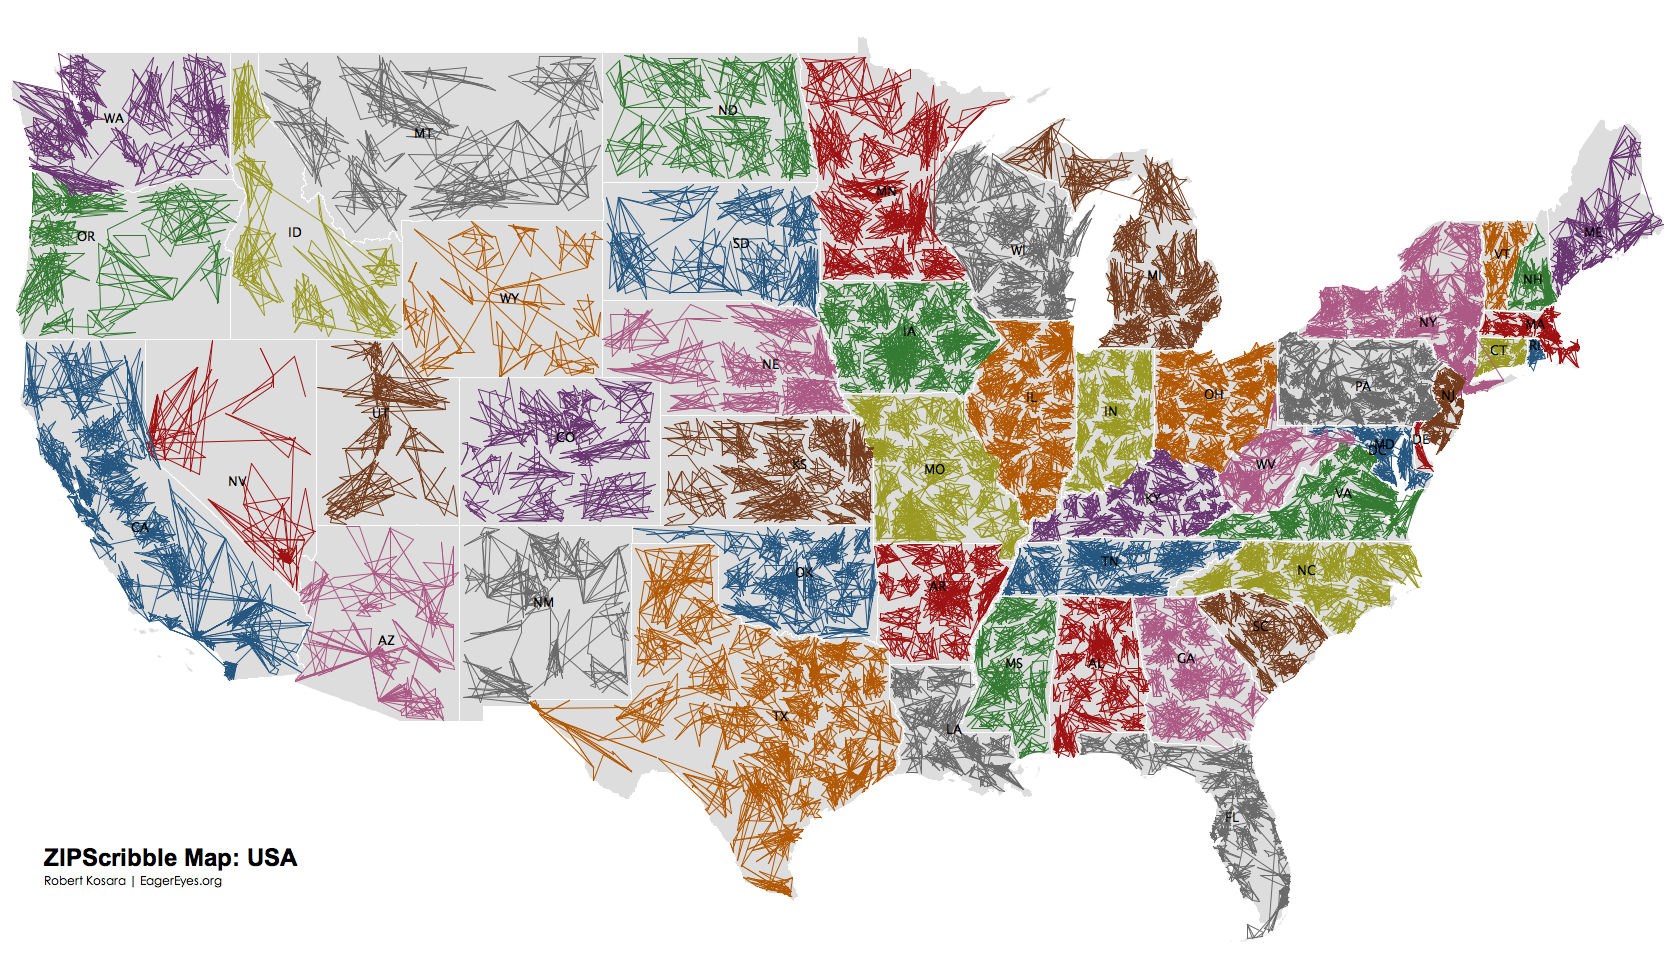 Population Density By Zip Code Map.Population Density By Zip Code Map Zip Code Map